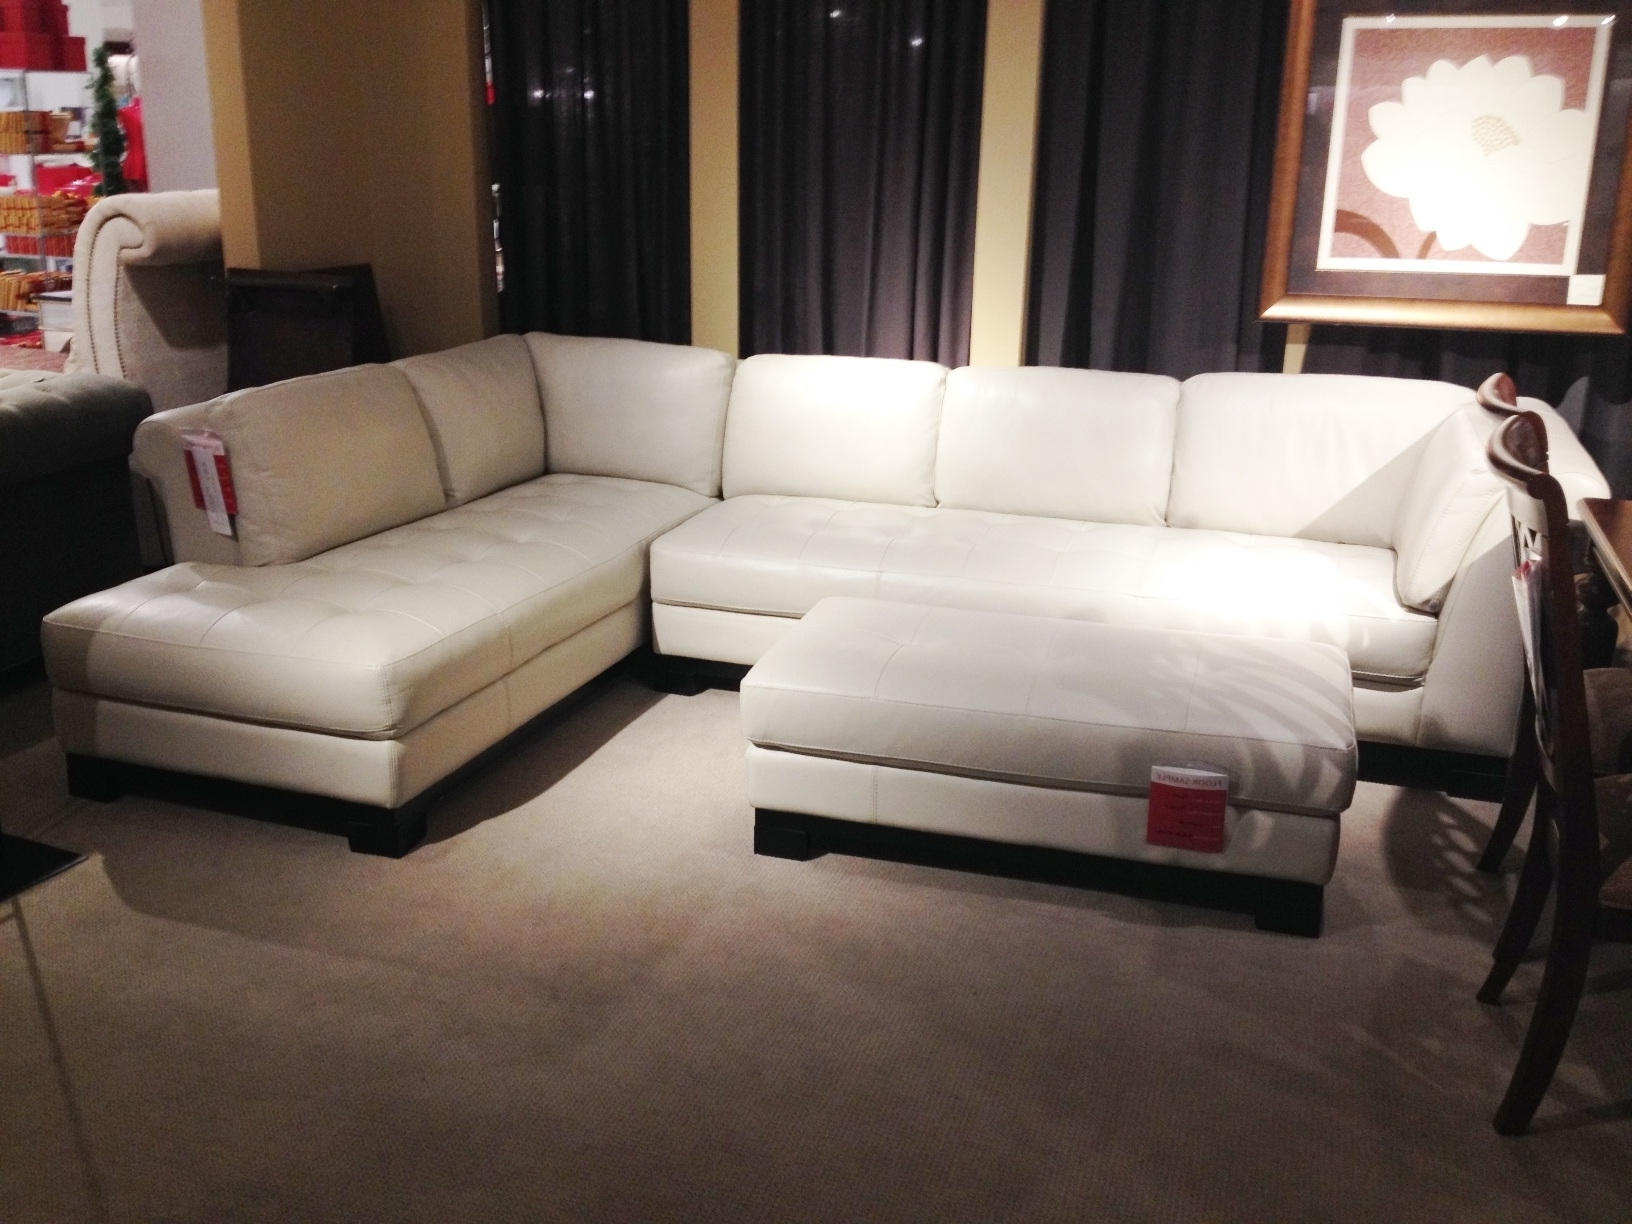 Most Recent White Leather Sectional Sofa Macy's • Leather Sofa Pertaining To Macys Sectional Sofas (View 6 of 15)